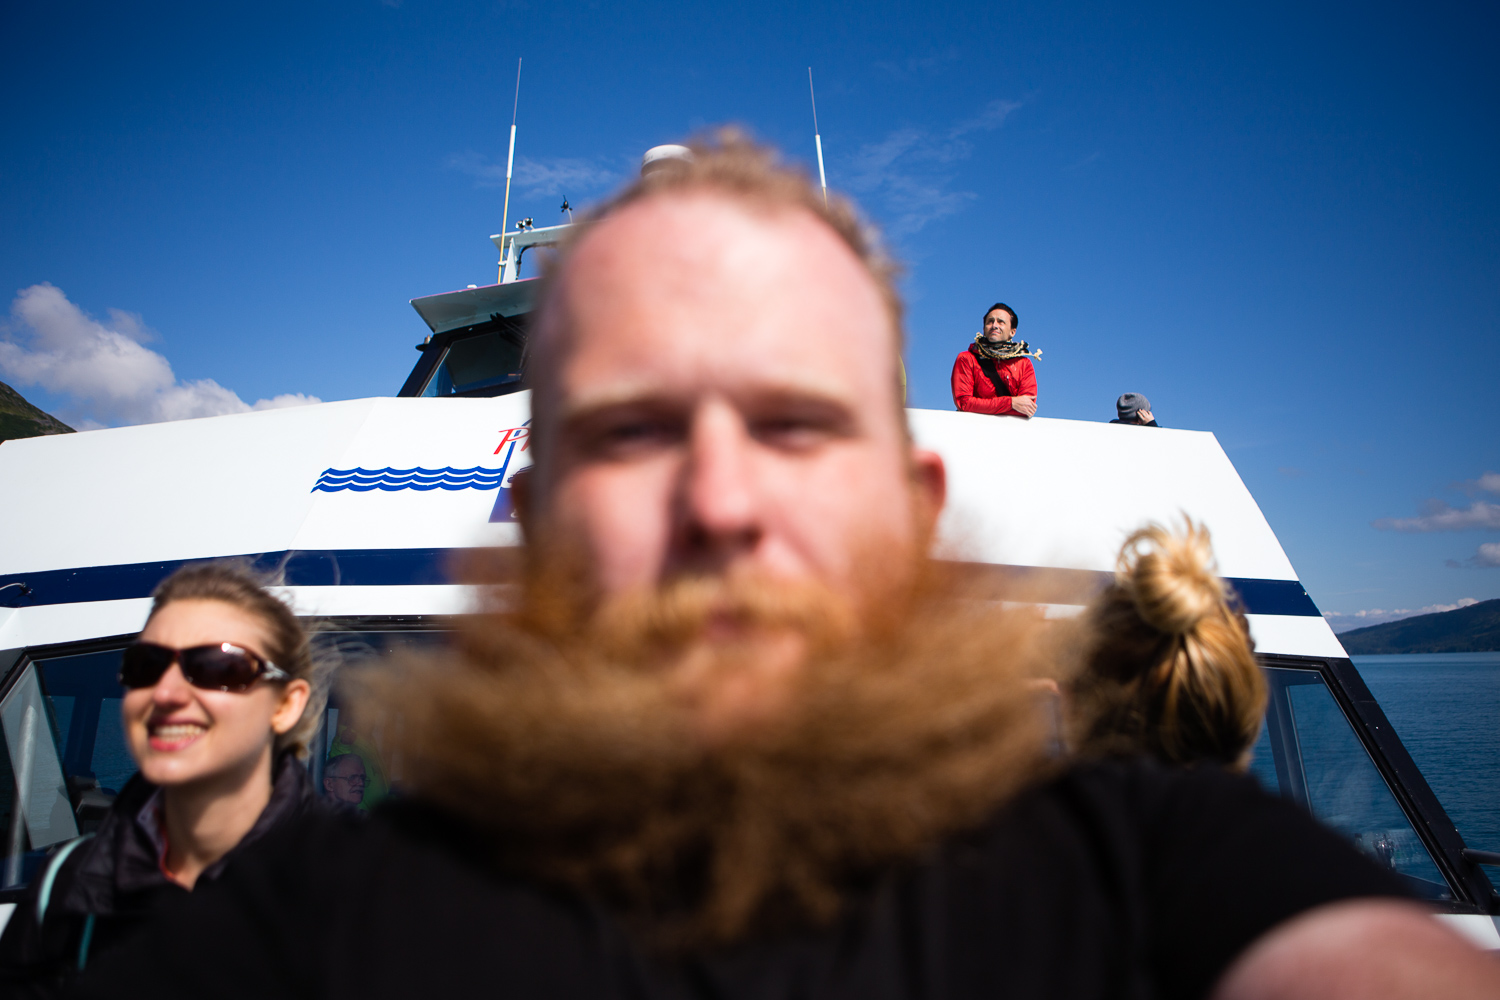 I attempted to take one selfie while I was on the boat to show off the shenanigans my beard was getting up to. Instead, I ended up taking a portrait of Stephen Alvarez that I'm sure he'll cherish forever. (DSLR)